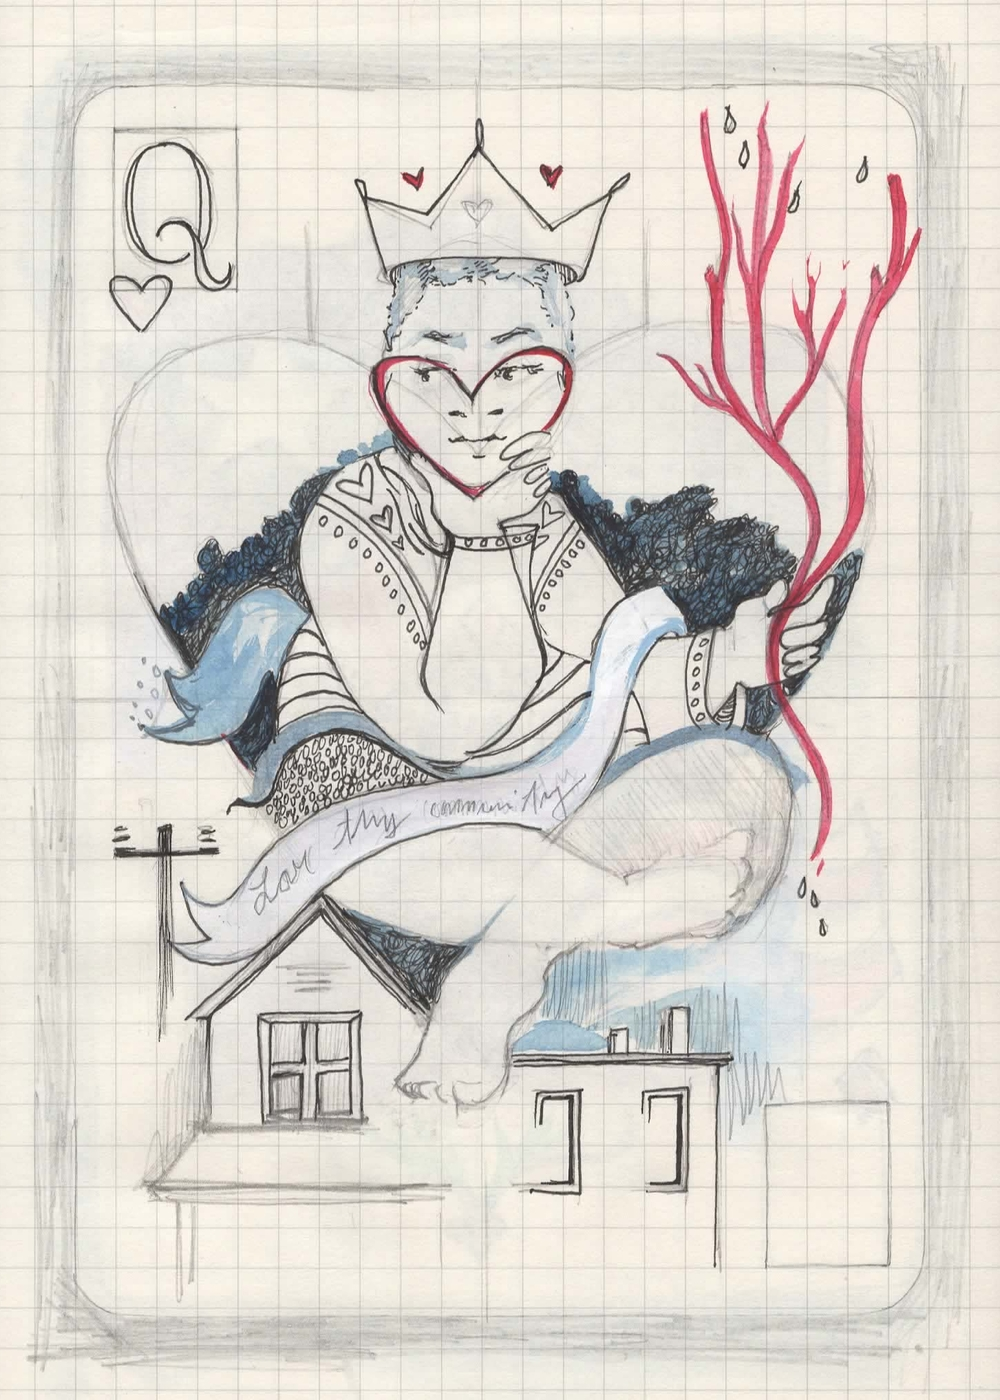 Queen of Hearts from the sketch book